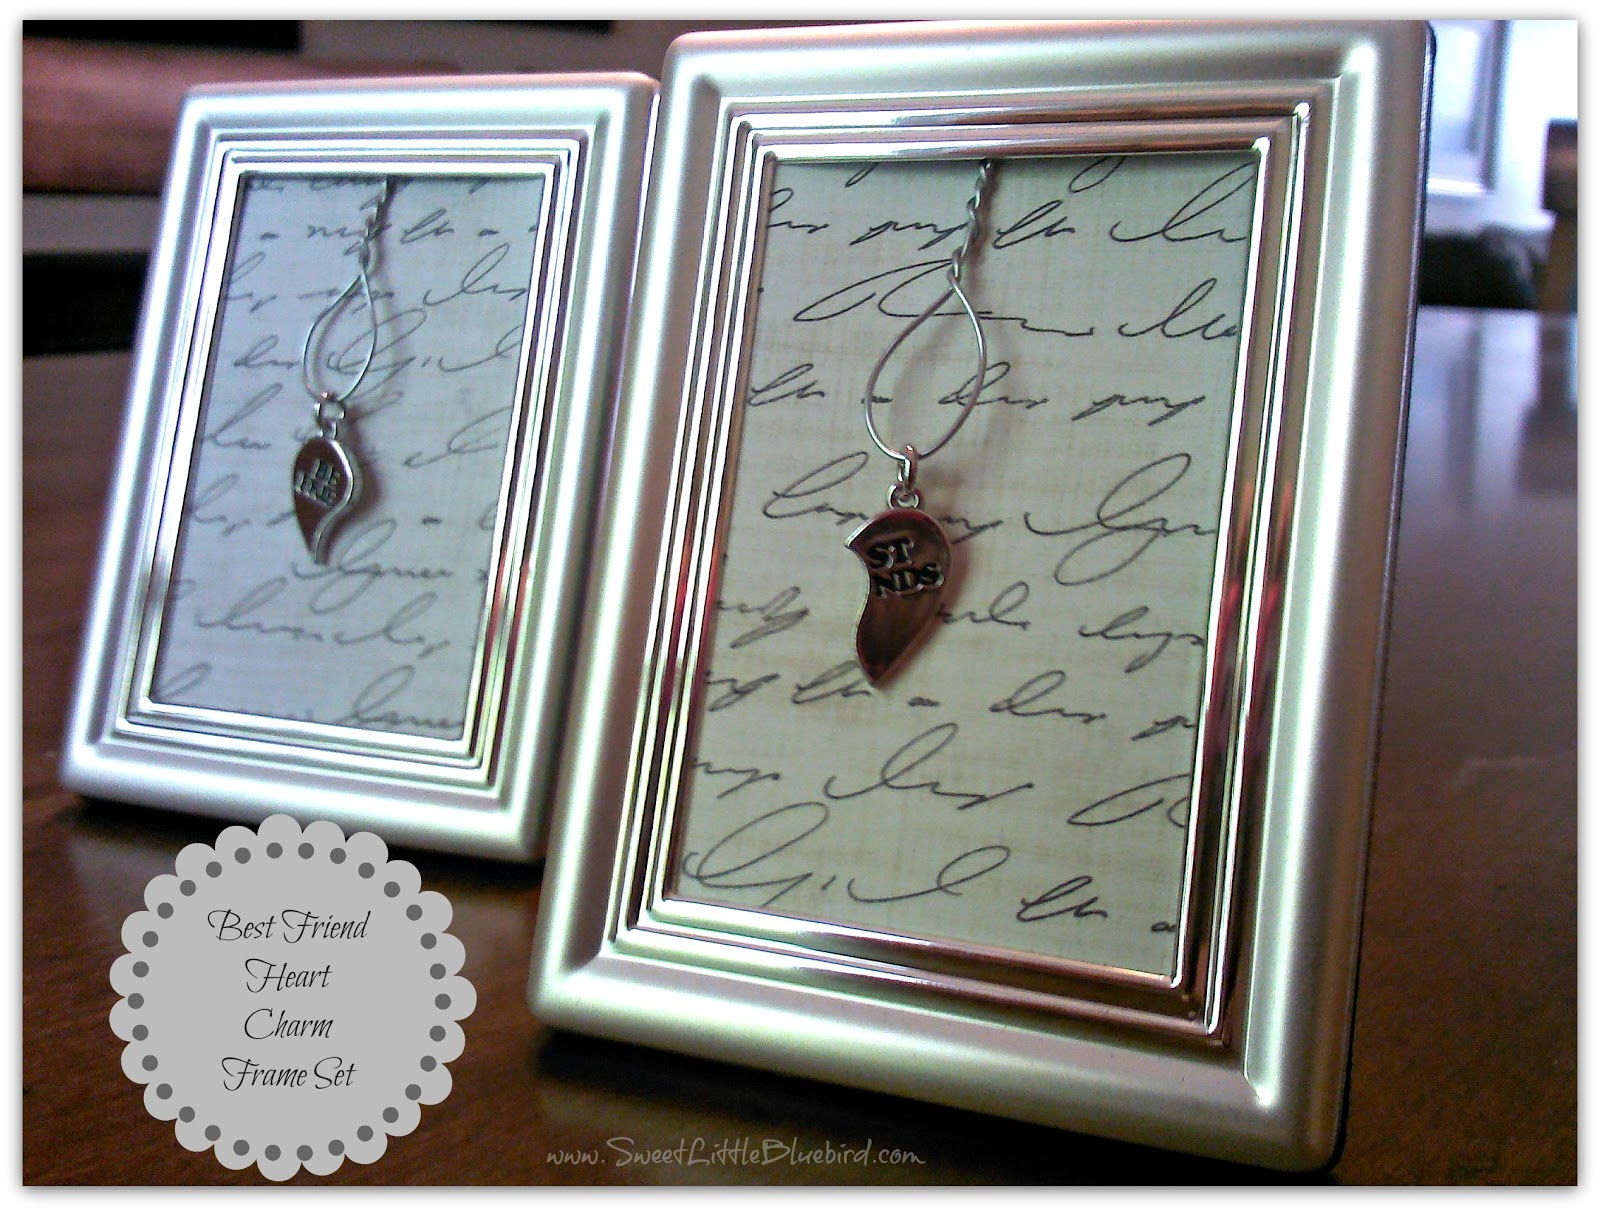 diy best friend heart charm frame set